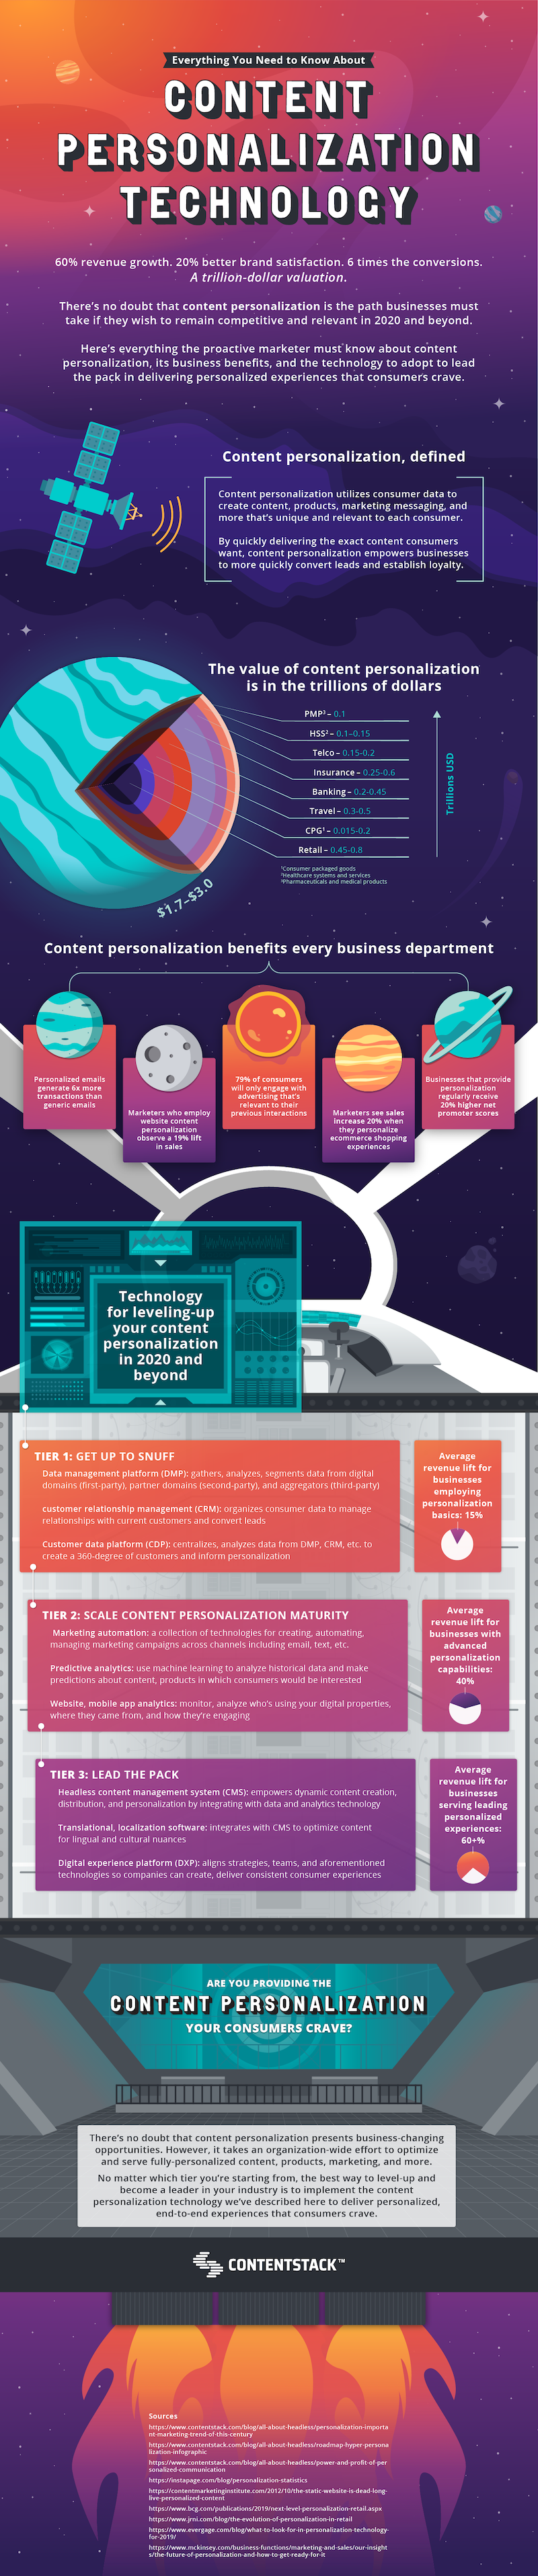 content-personalization-technology-infographic.png